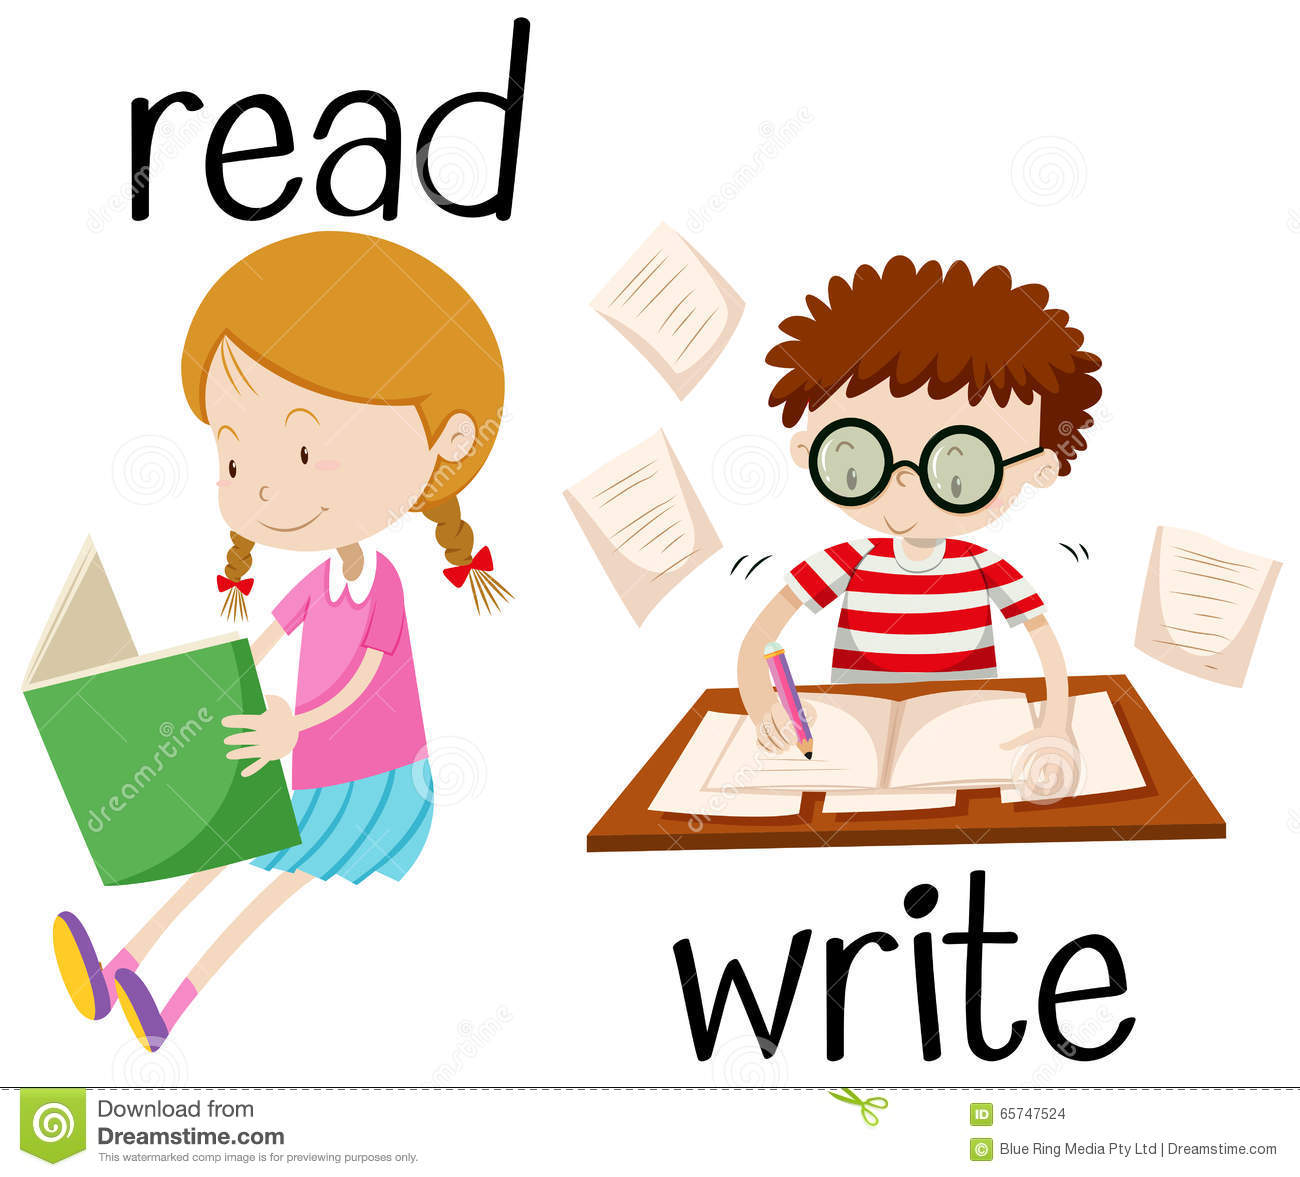 read to write Boost reading and writing confidence across all types of content and devices, in class, at work, and at home.